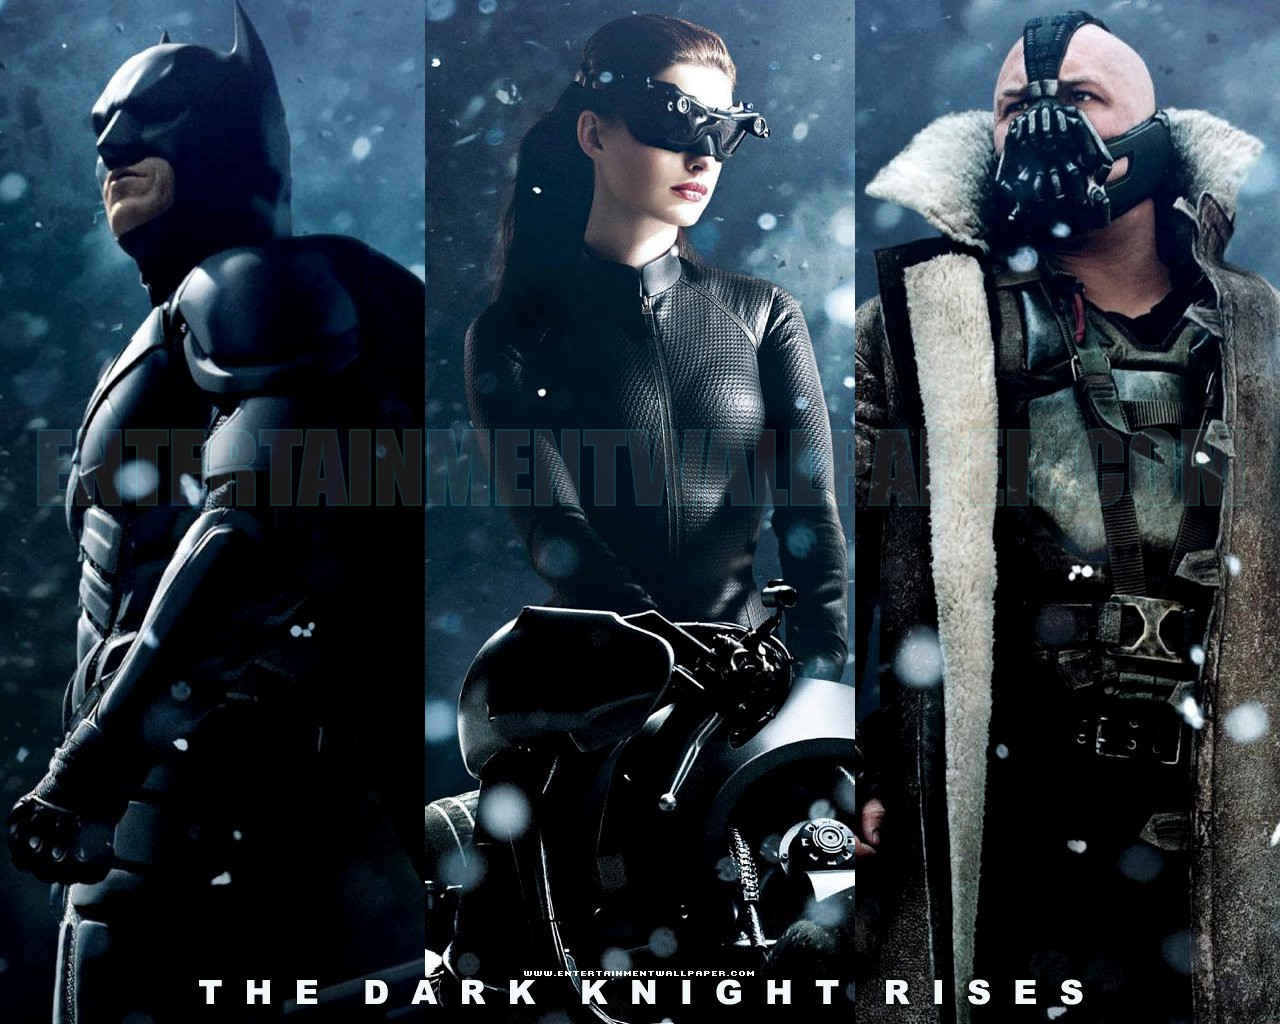 The Dark Knight Rises 2012 movie